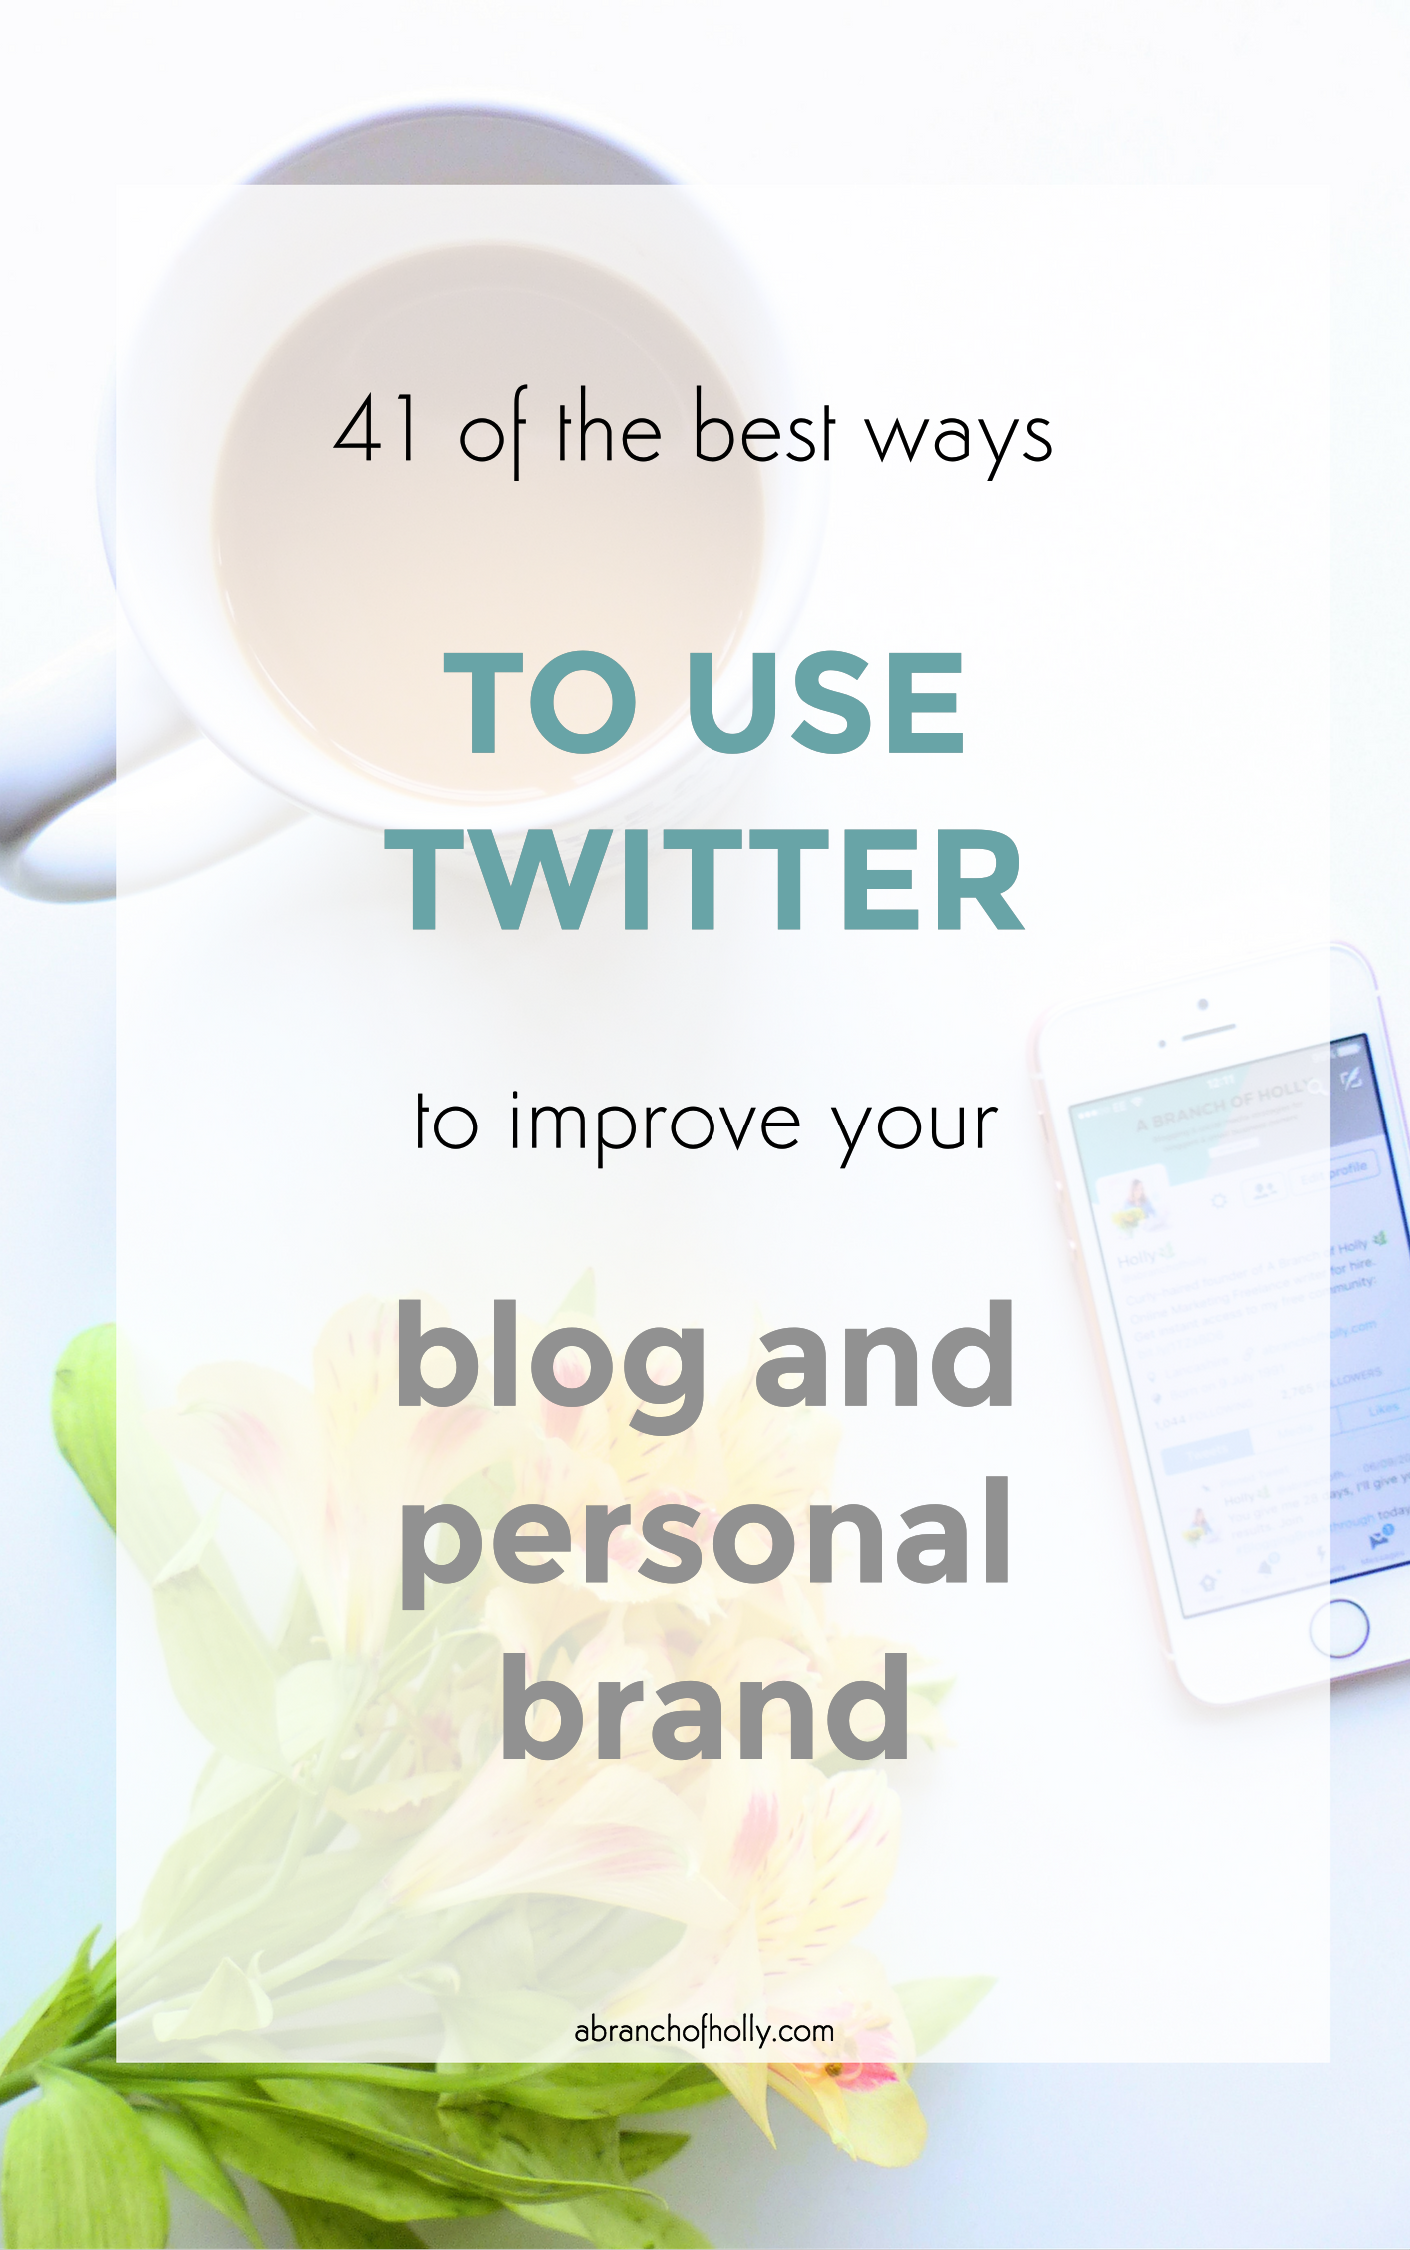 how to use twitter to improve your blog and personal brand